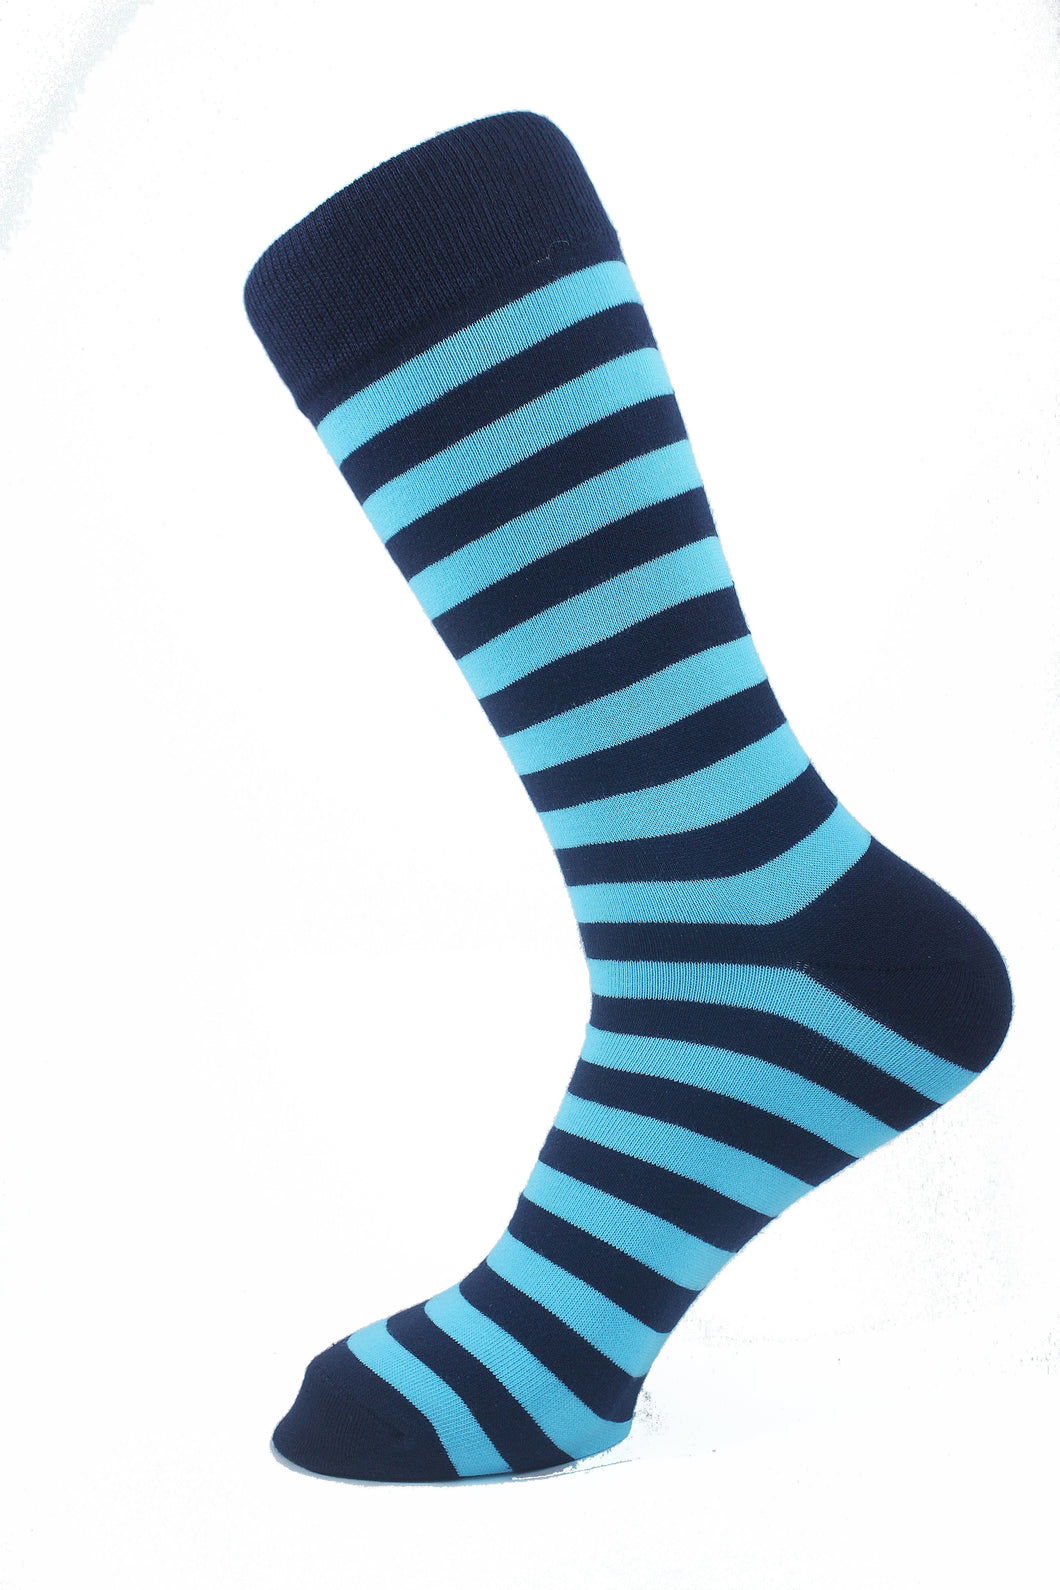 Striped Men Socks Blue - samnoveltysocks.com